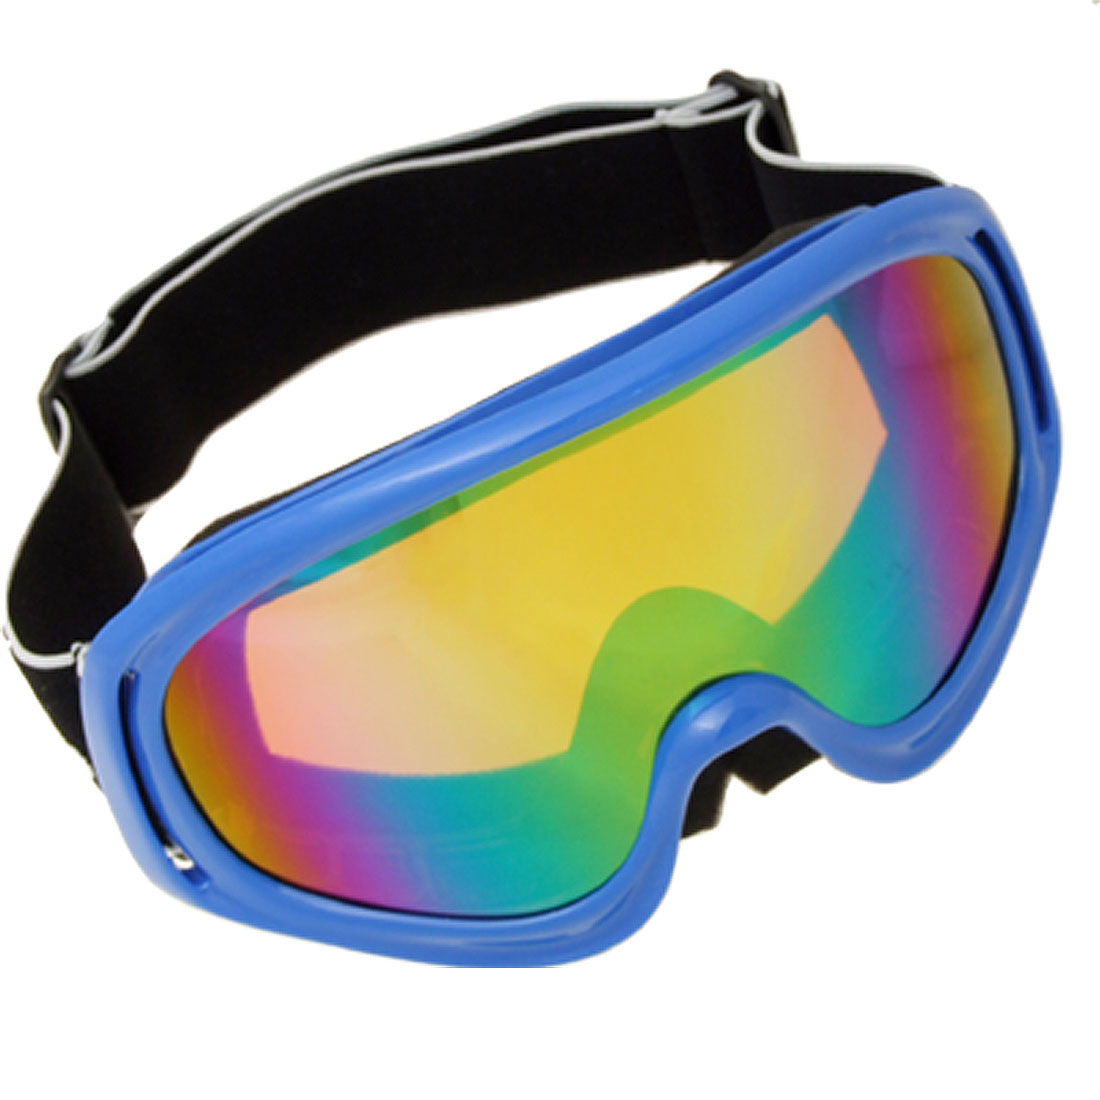 Aspen Spectrum Ski Goggles - UV Protection Color-Coated Lens in Blue Frame